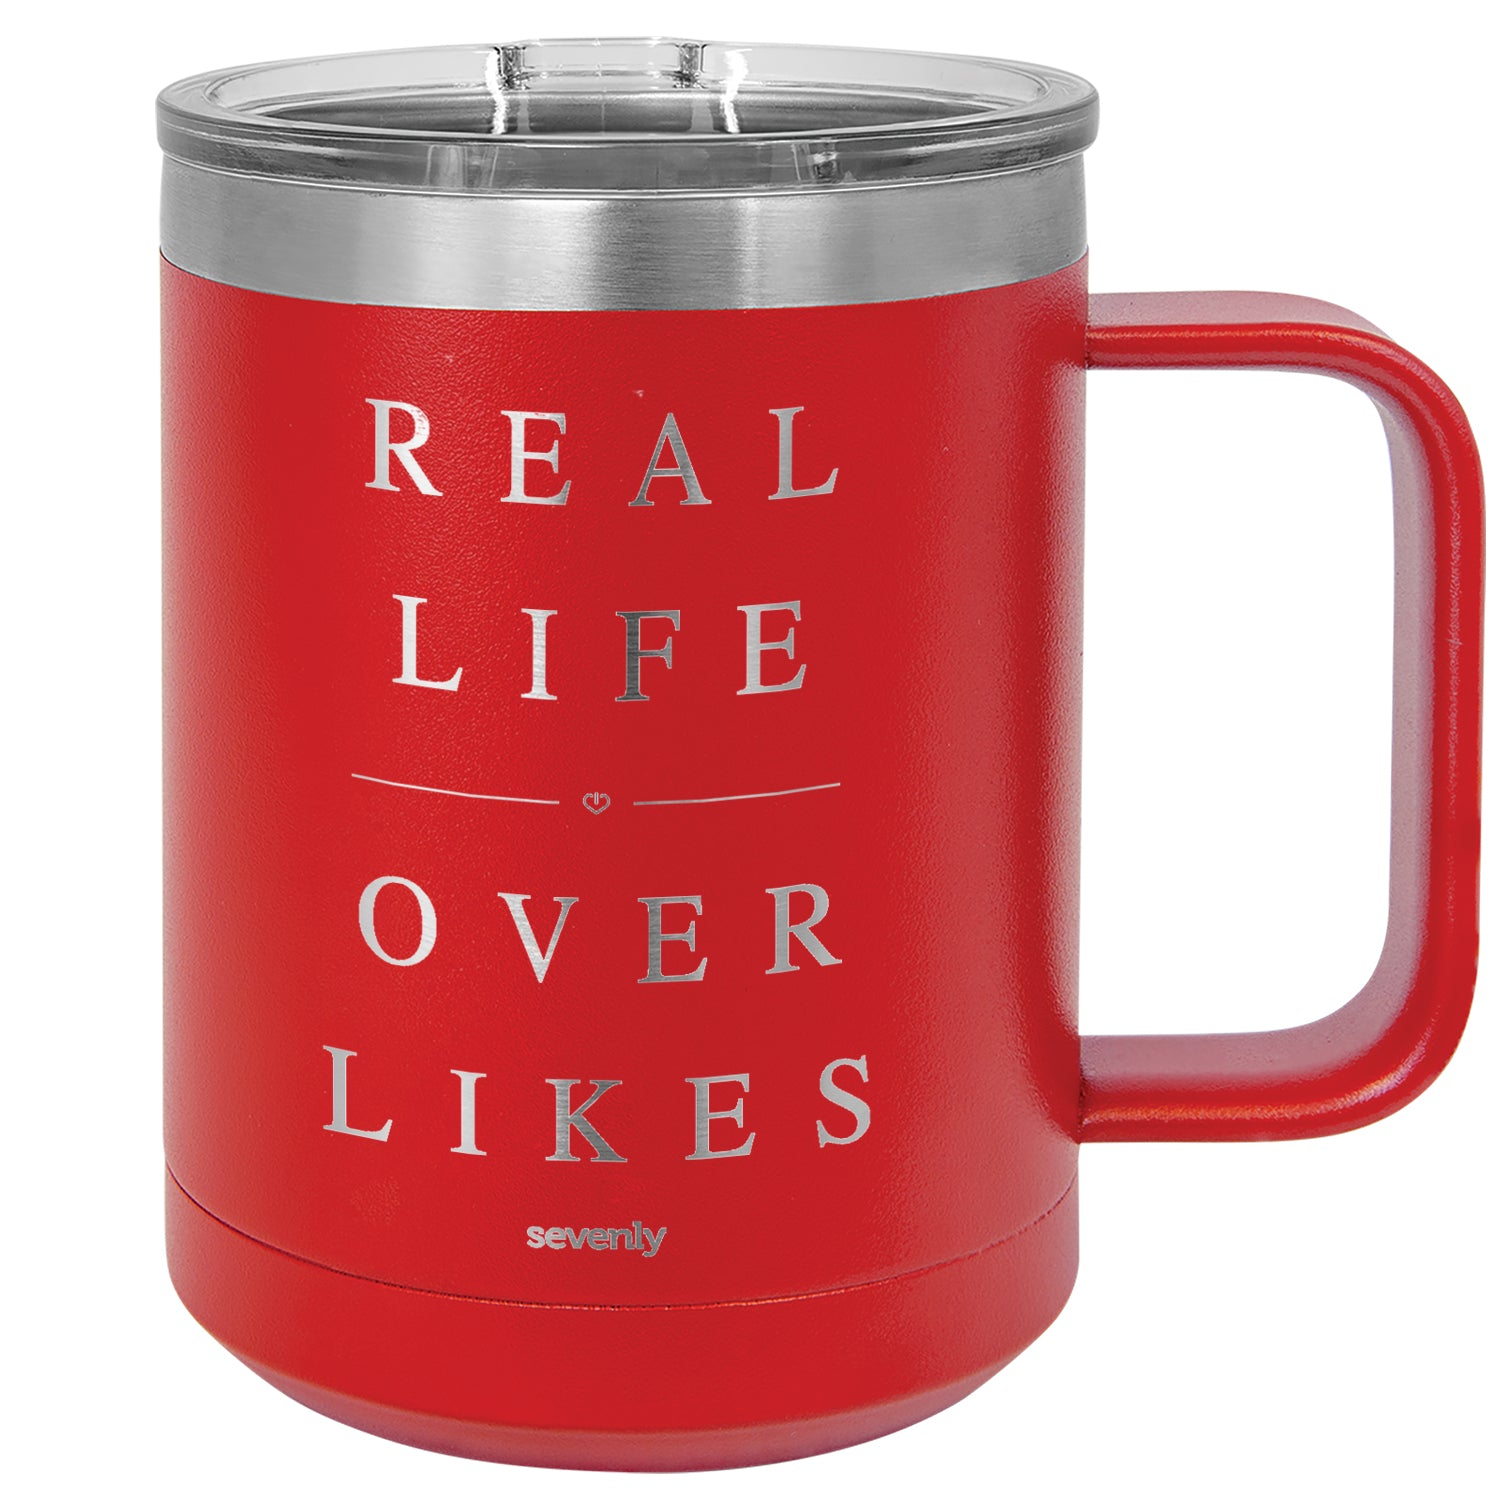 Real Life Over Likes Insulated Mug Drinkware